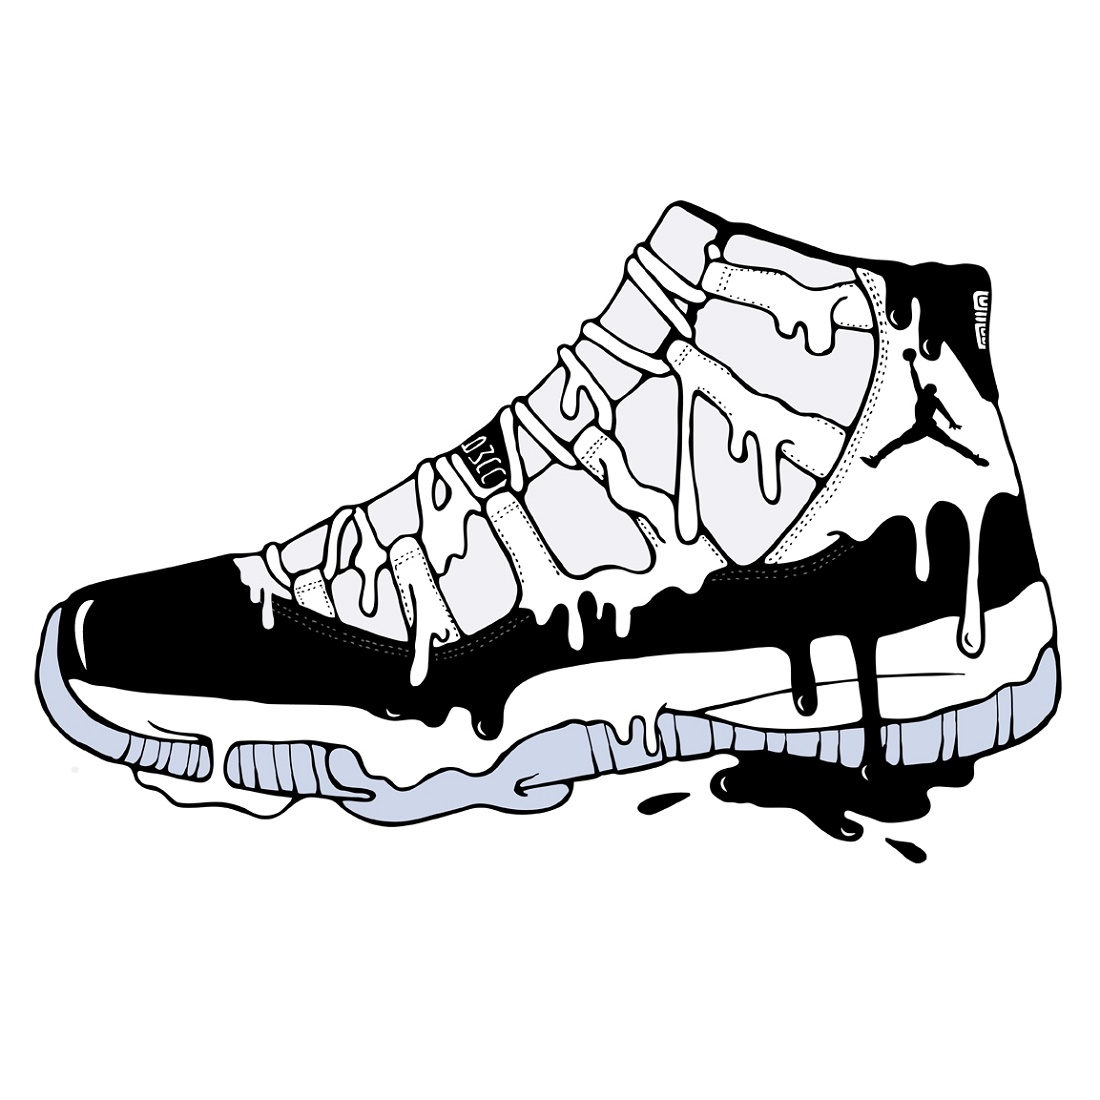 Jordan-11-Coloring-Page-For-Adults